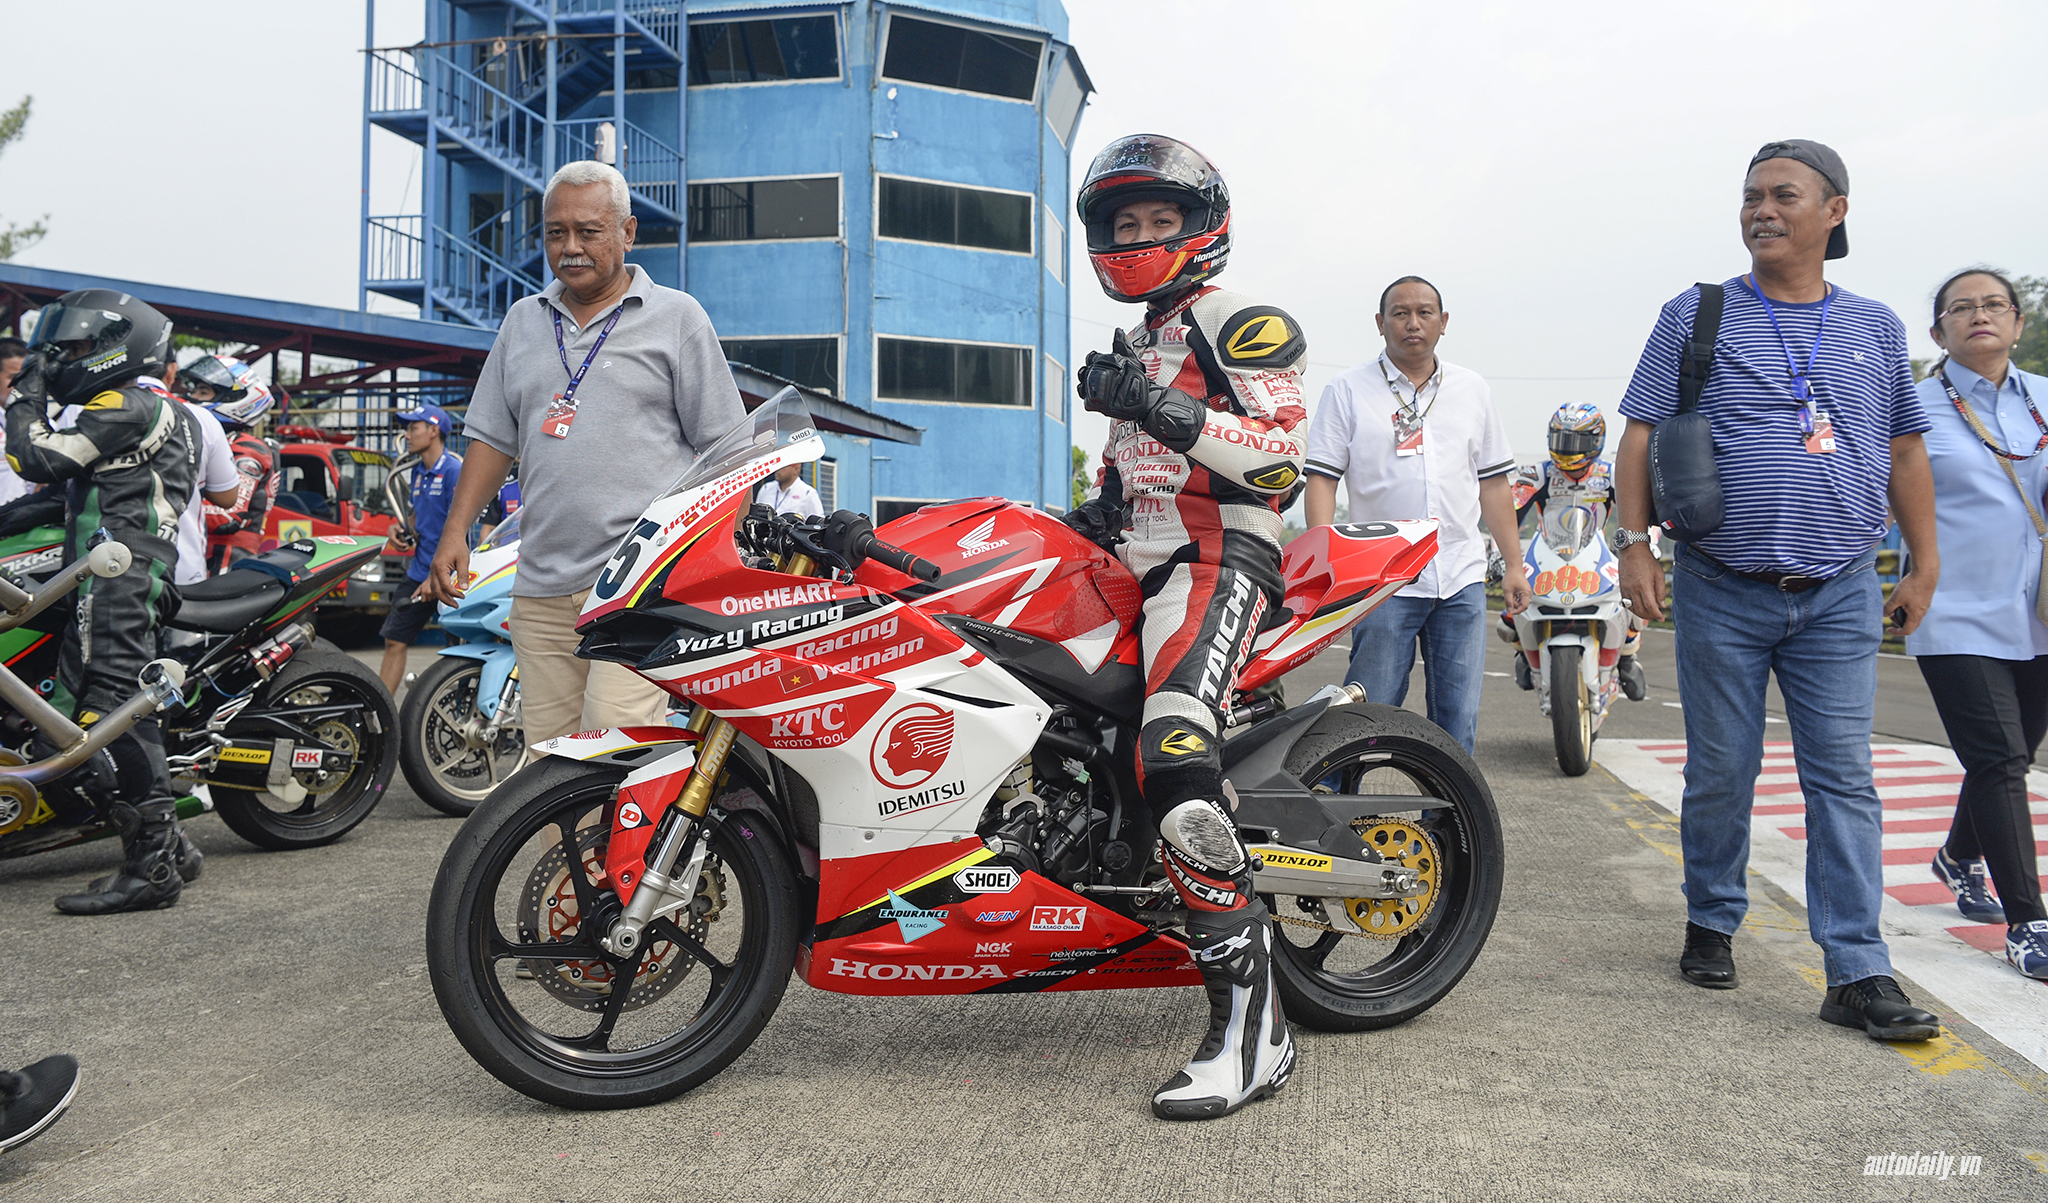 honda-racing-vn-dsc8560-copy.jpg